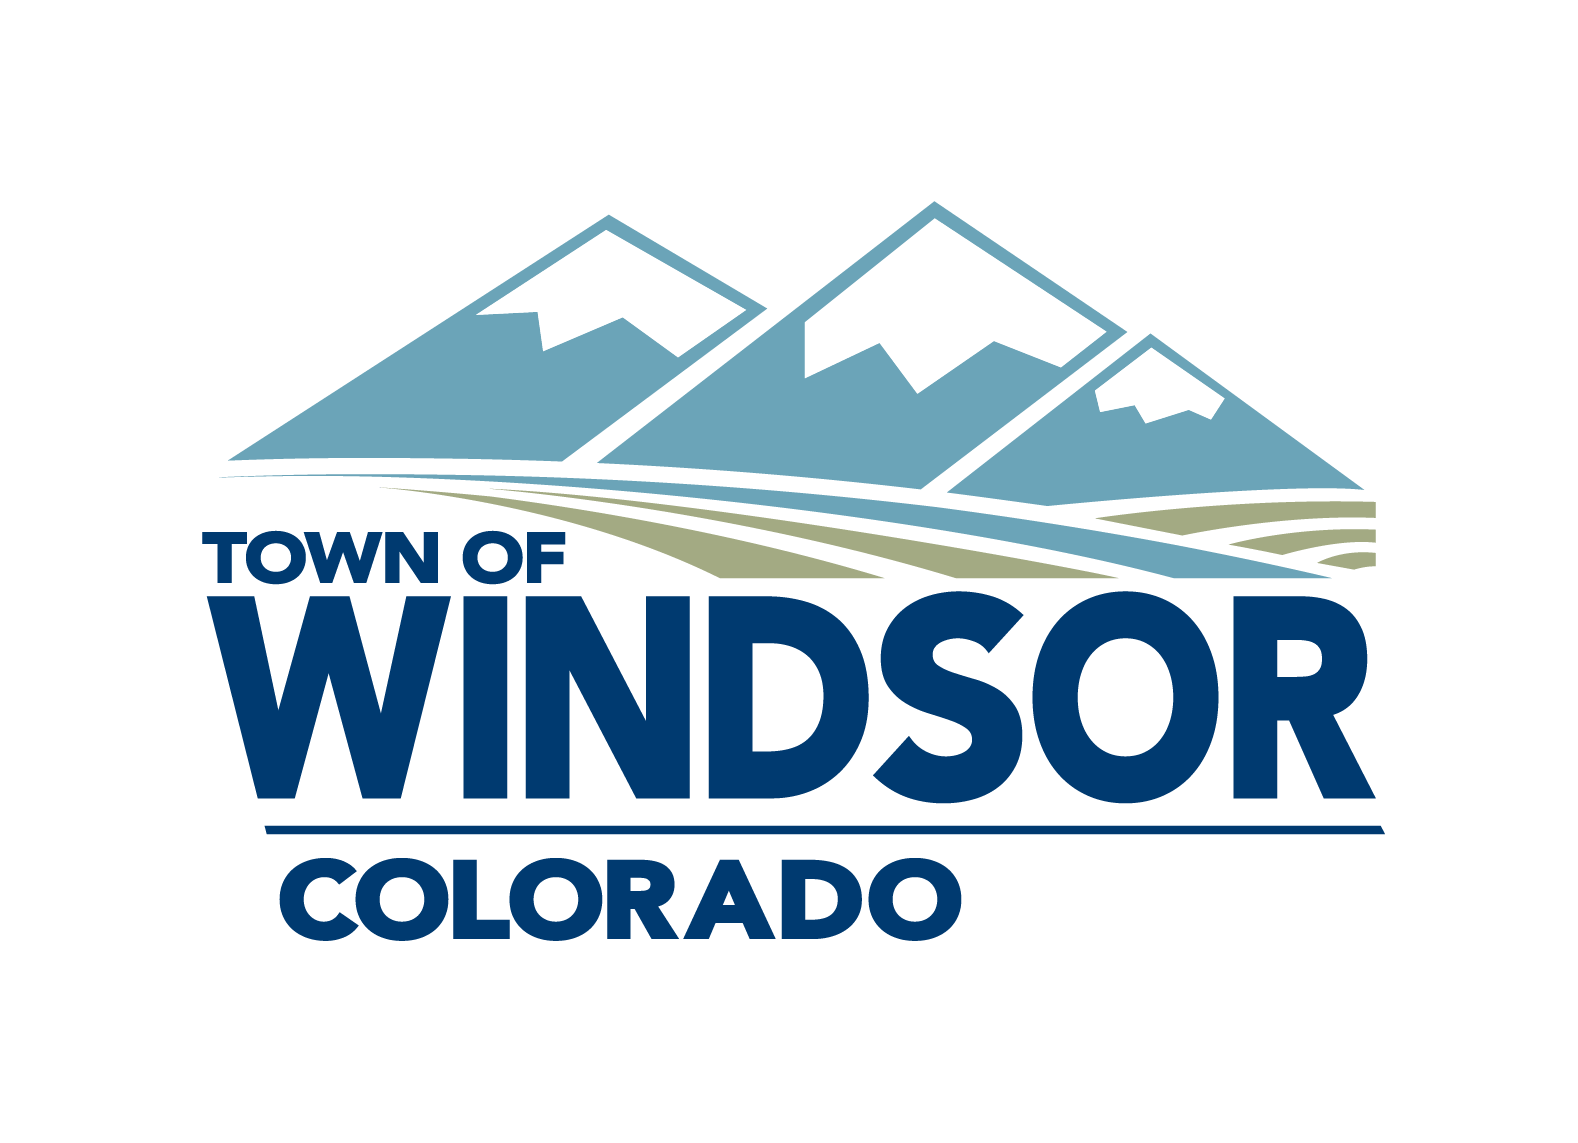 Town of Windsor Colorado